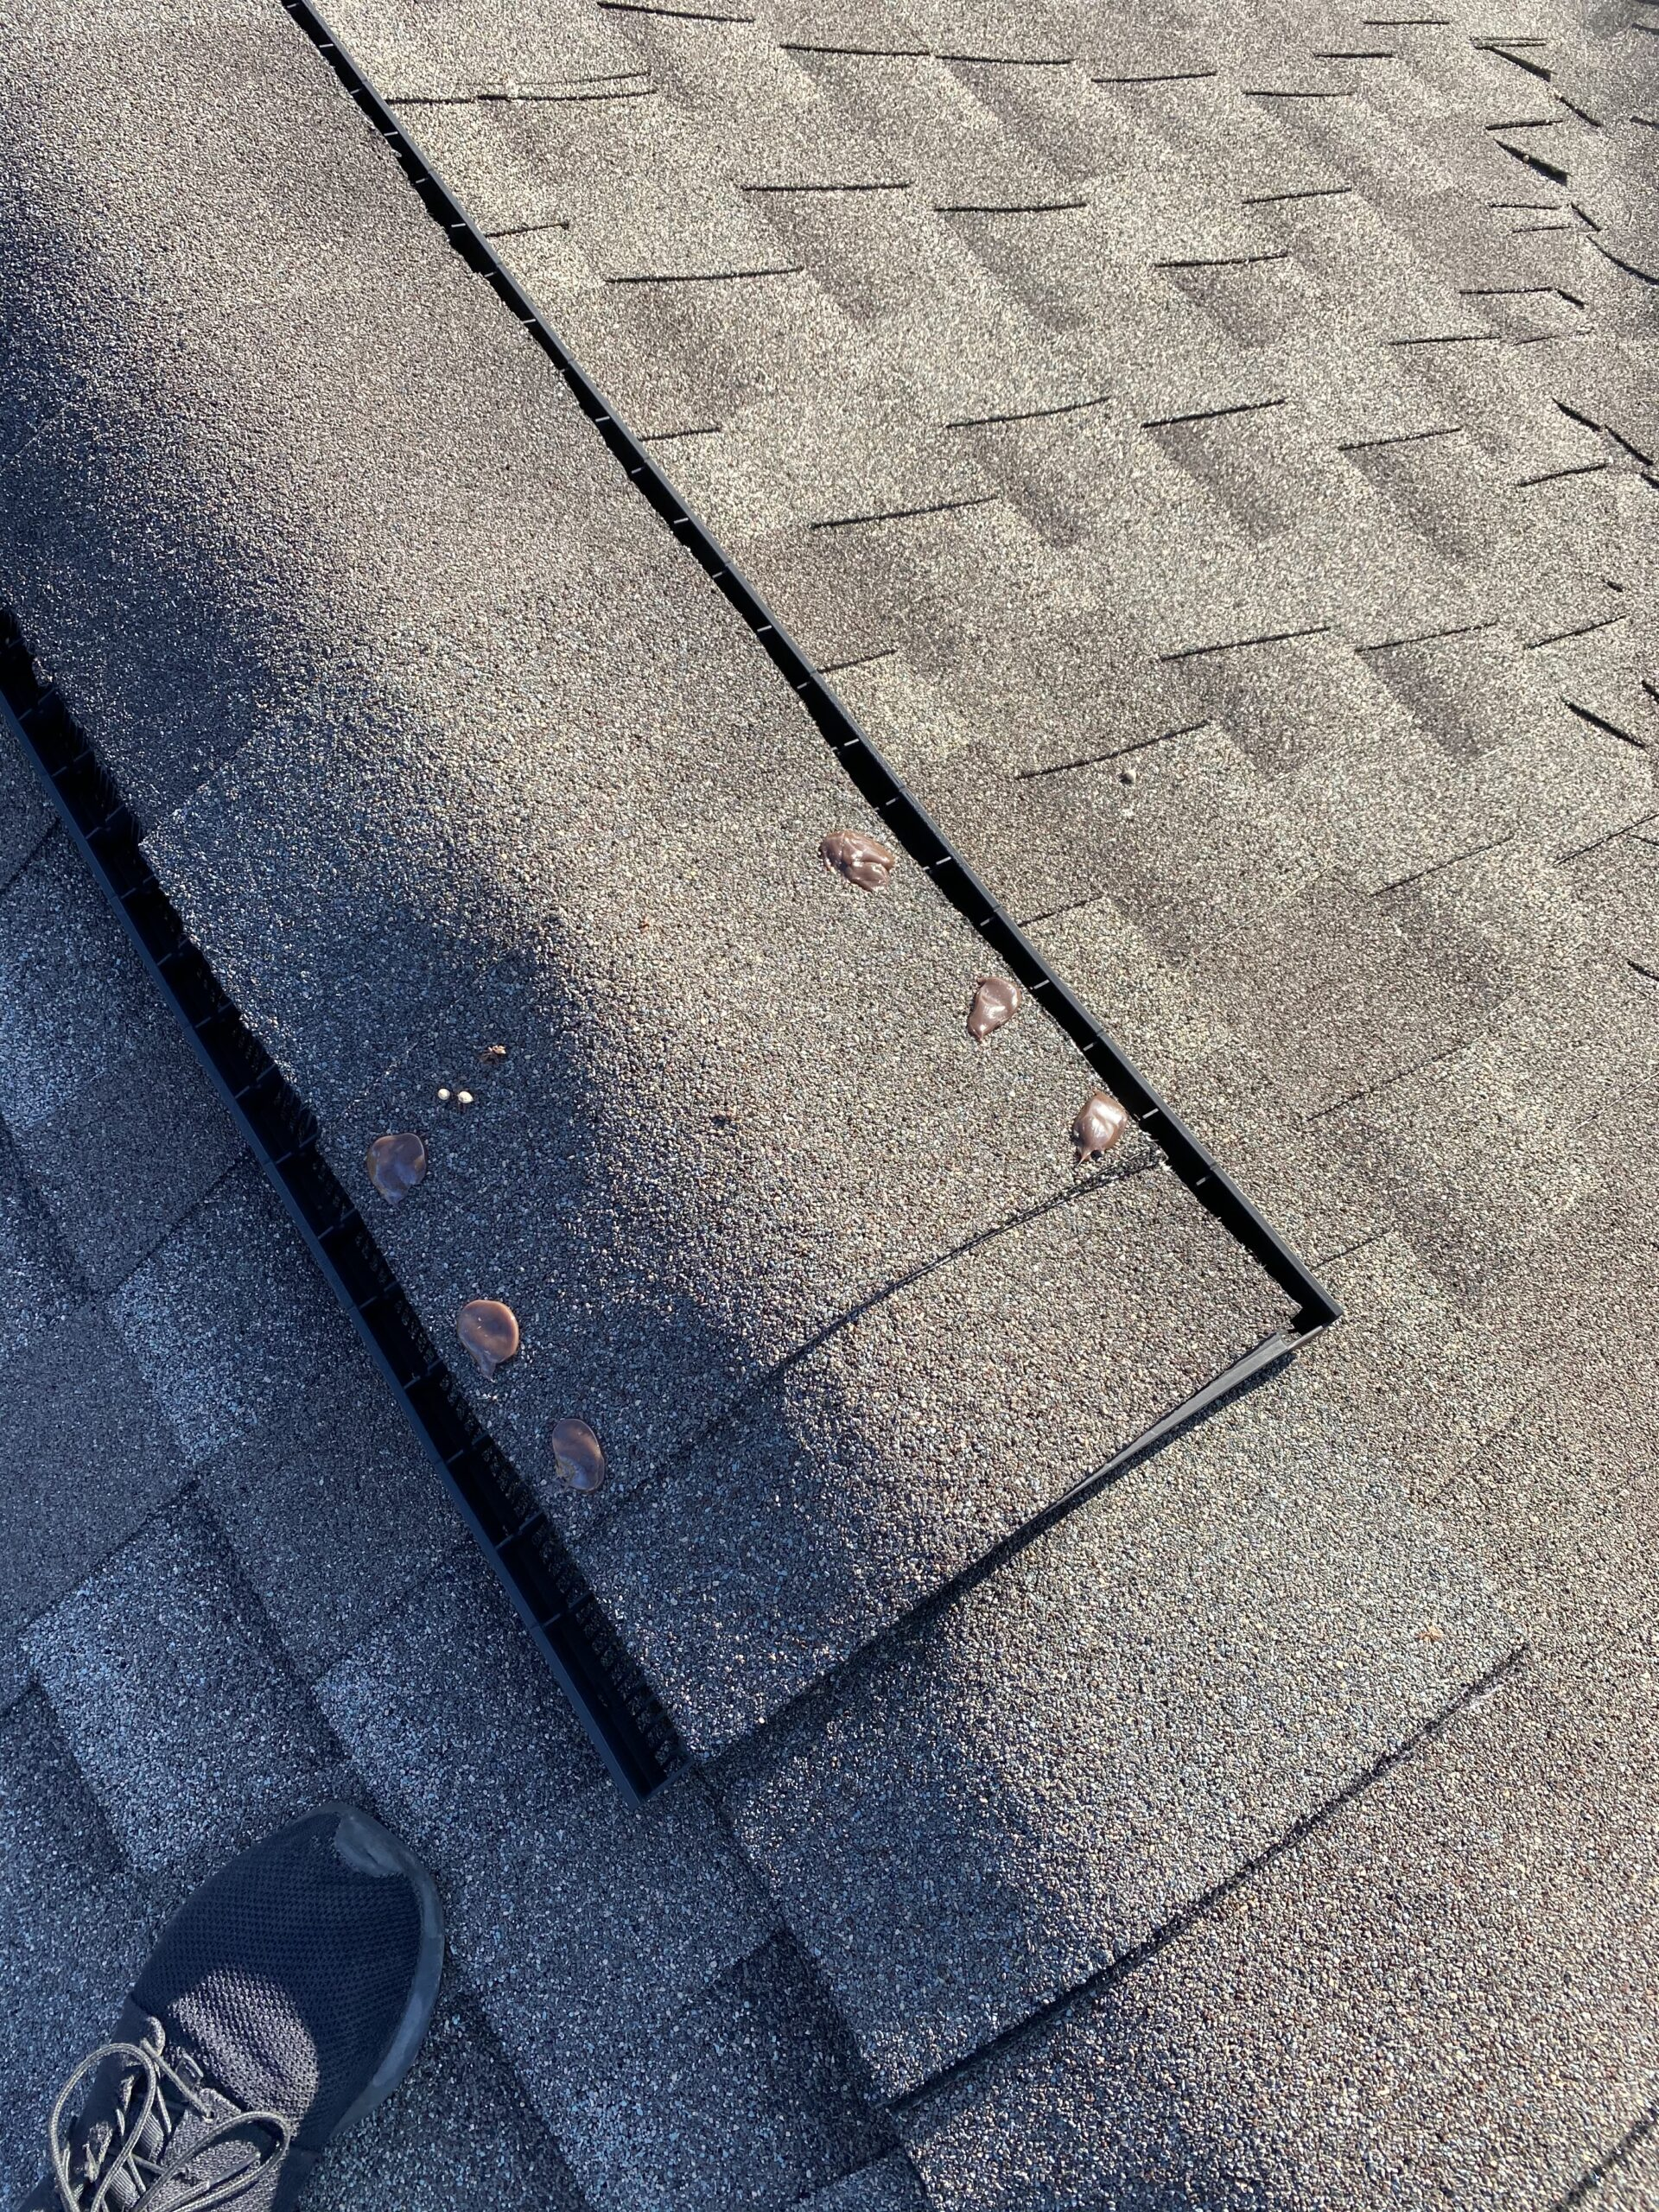 This is a picture of brown shingles on a ridge cap that has sealed nails